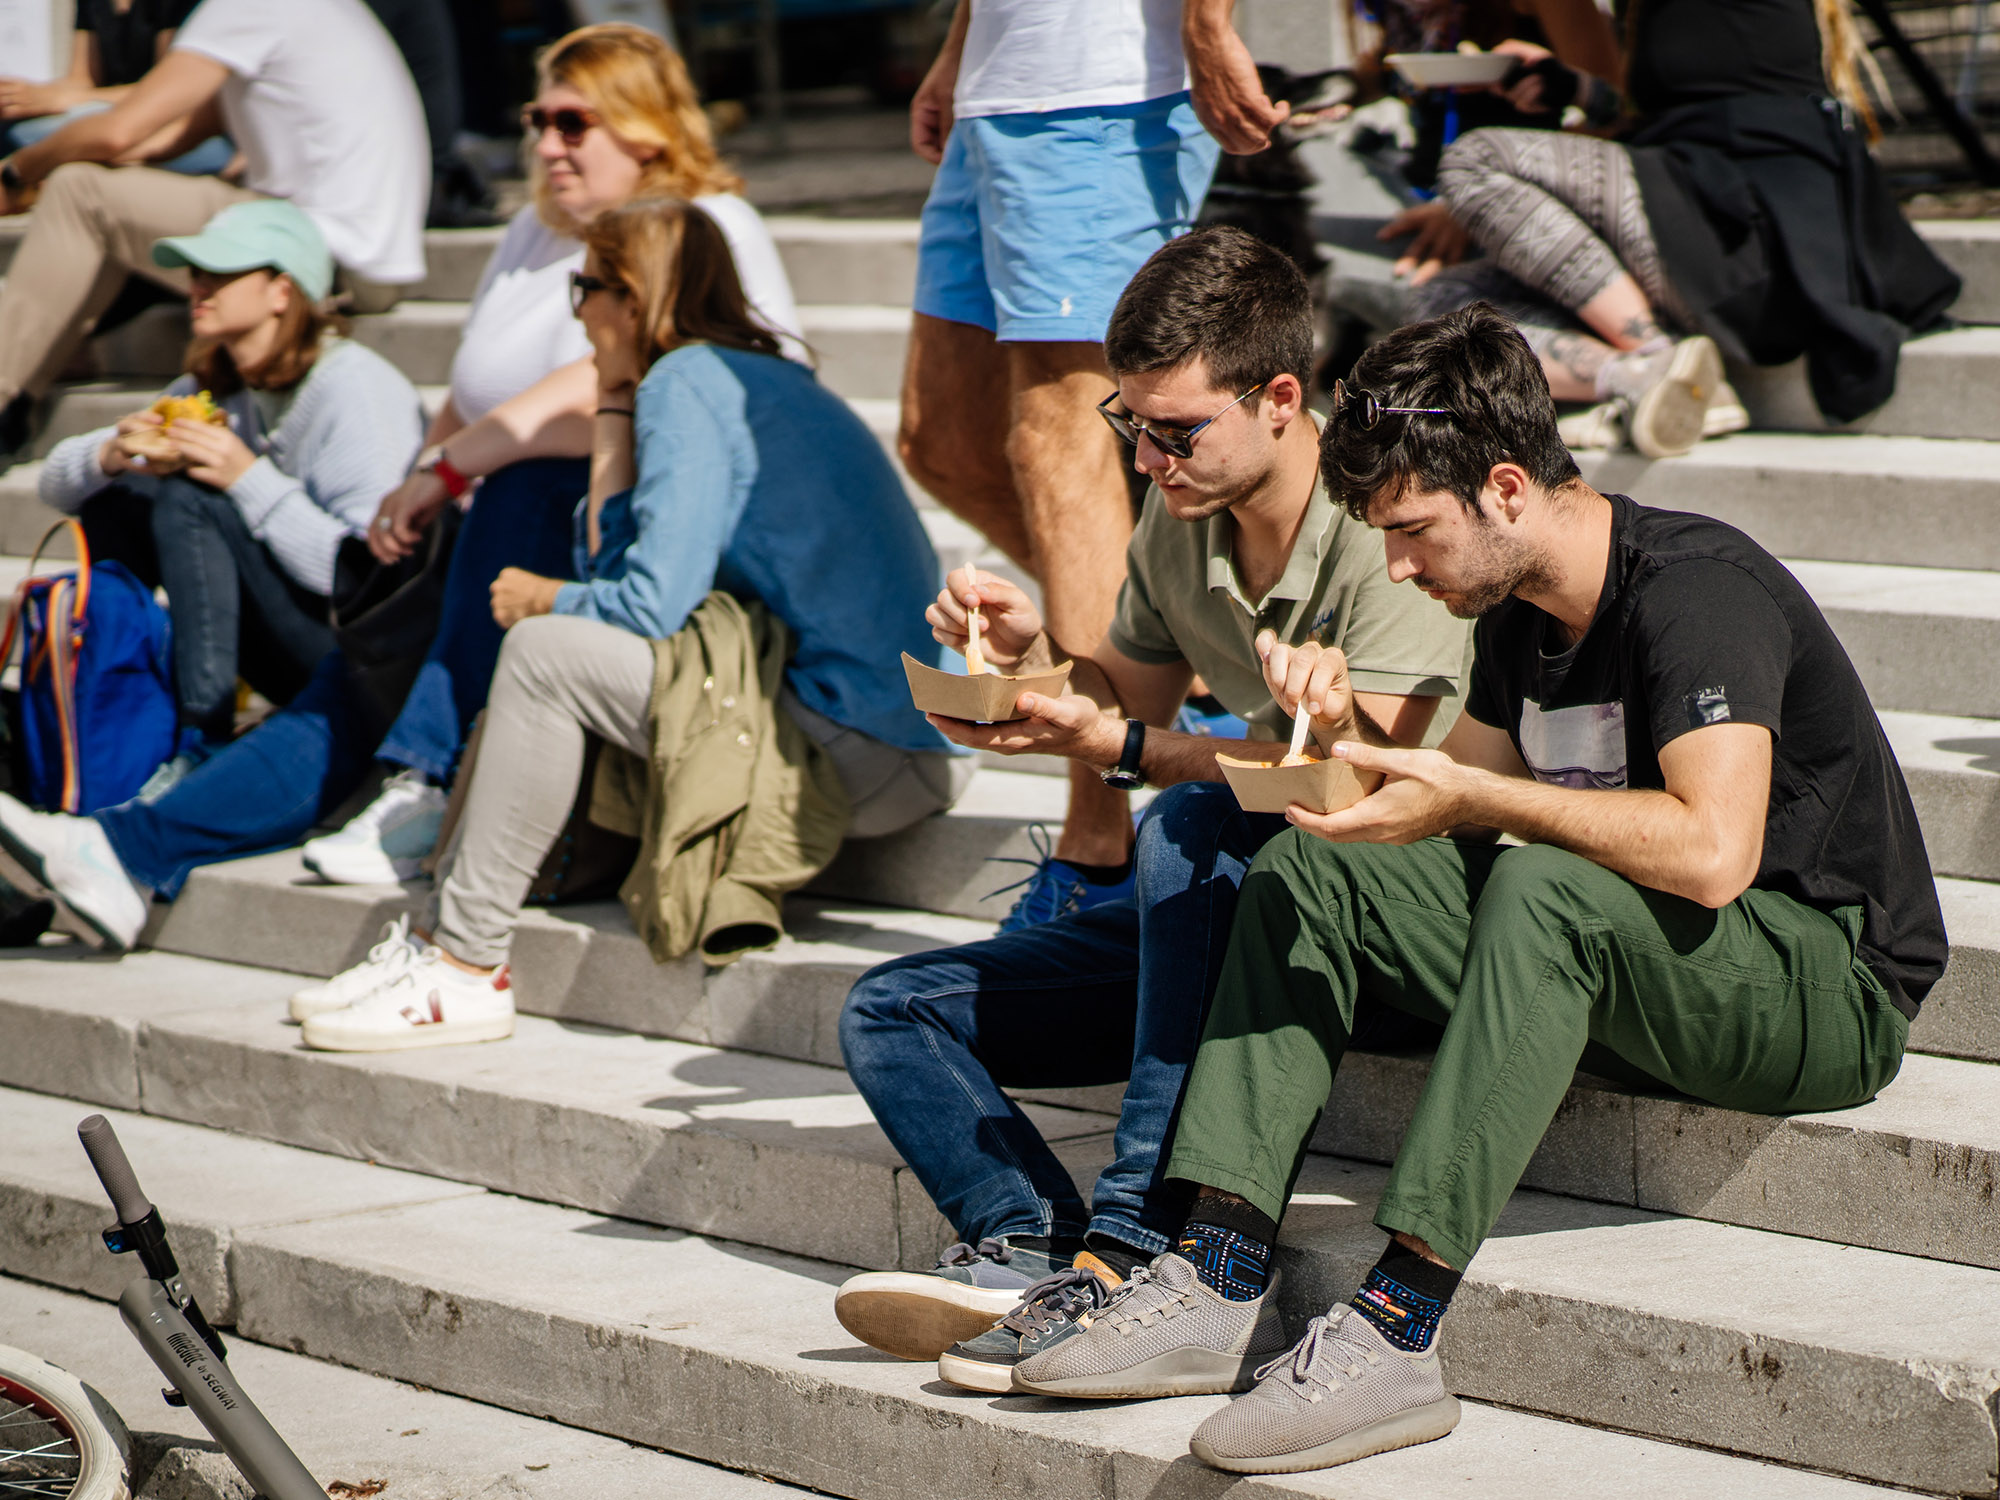 Socialising around food in the streets and squares